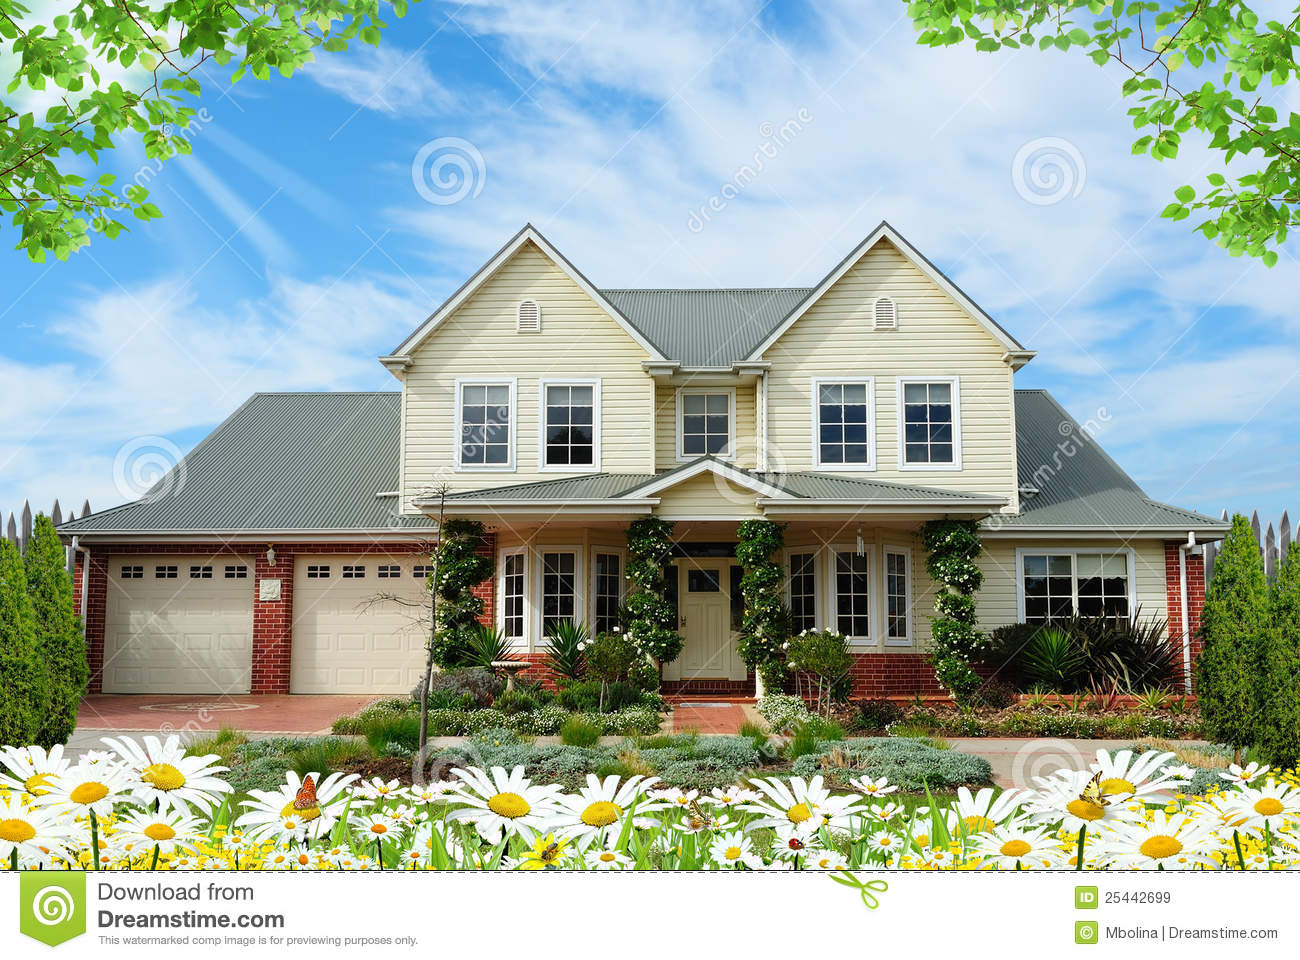 house with flowers royalty free stock images - image: 25442699